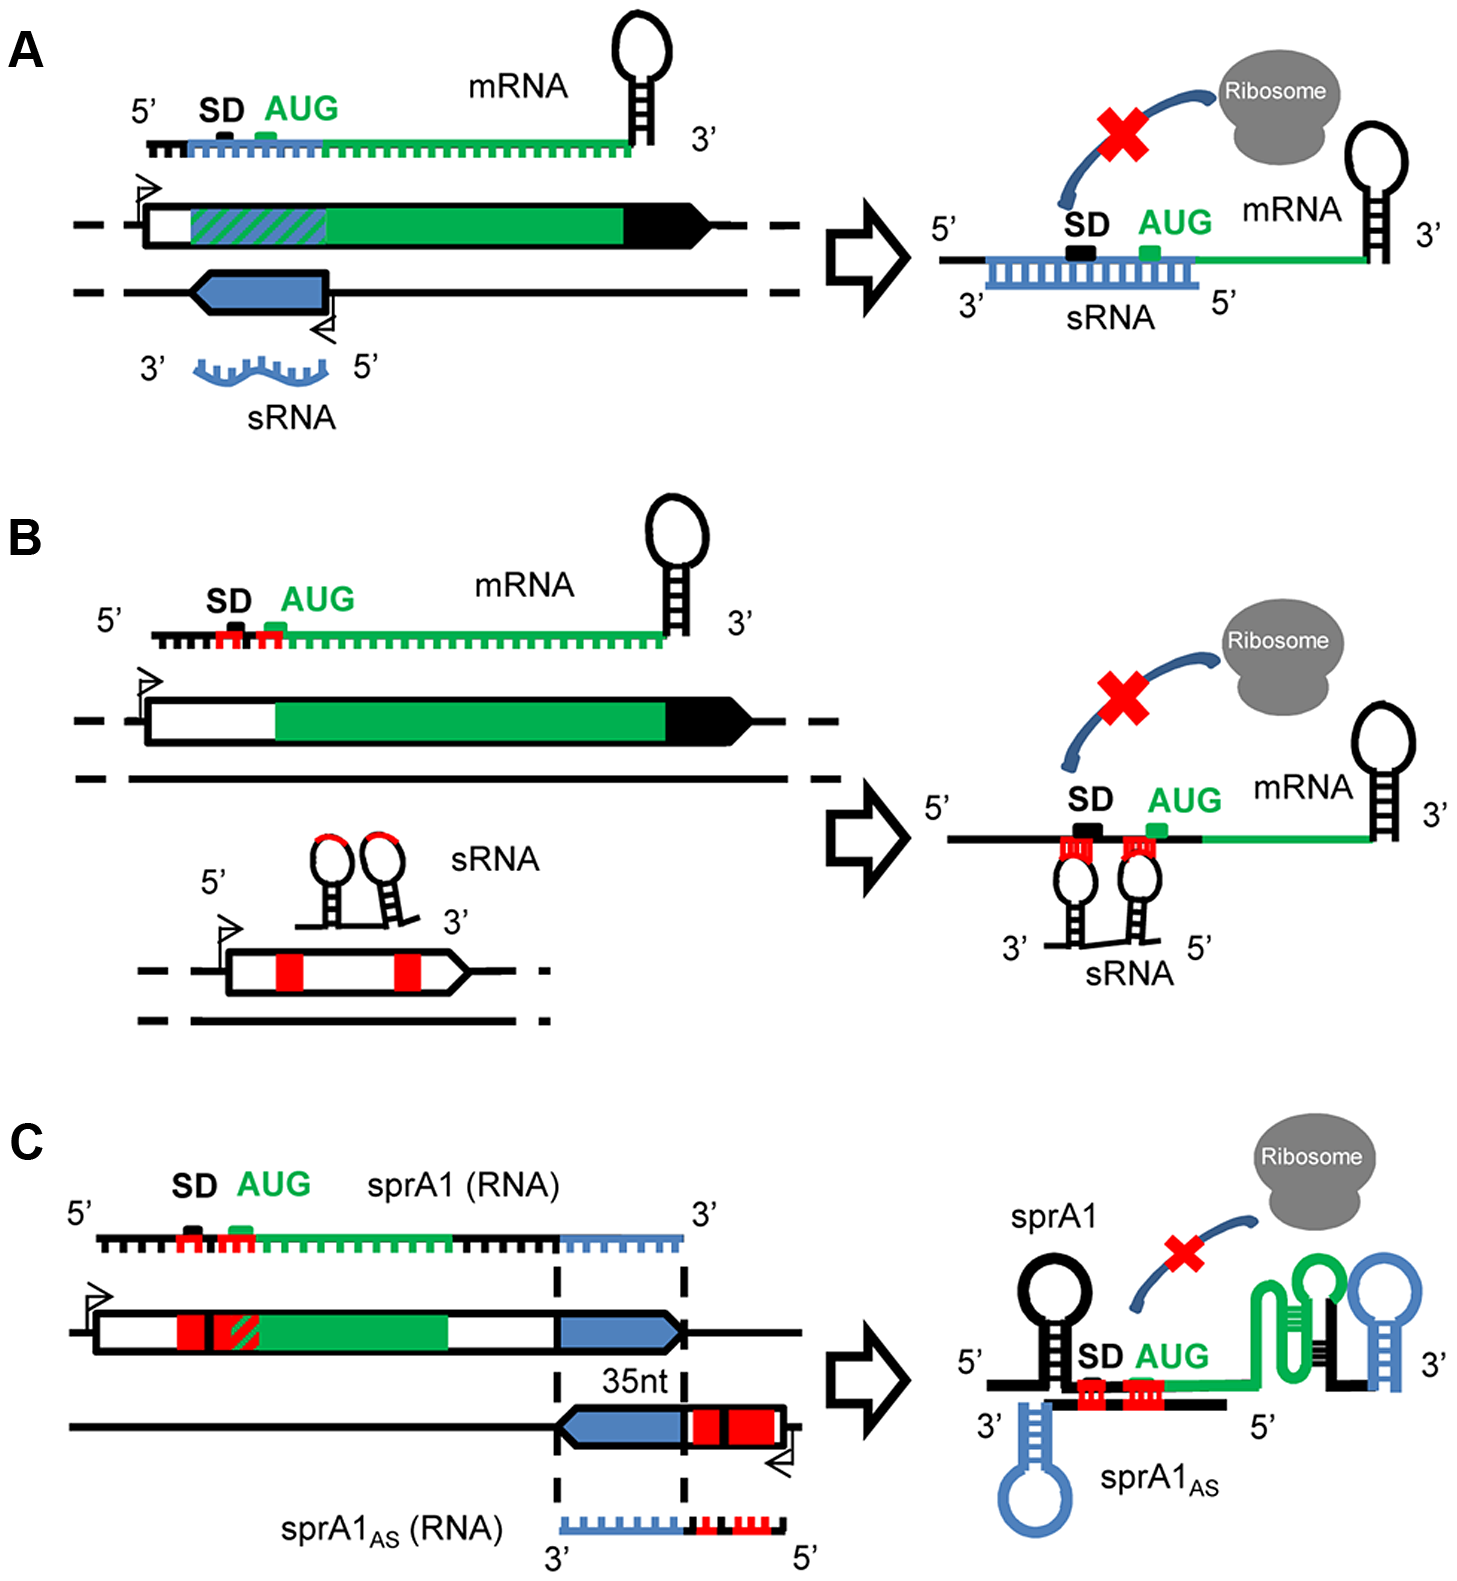 A variety of mechanisms of actions for the <i>S. aureus</i> sRNAs.